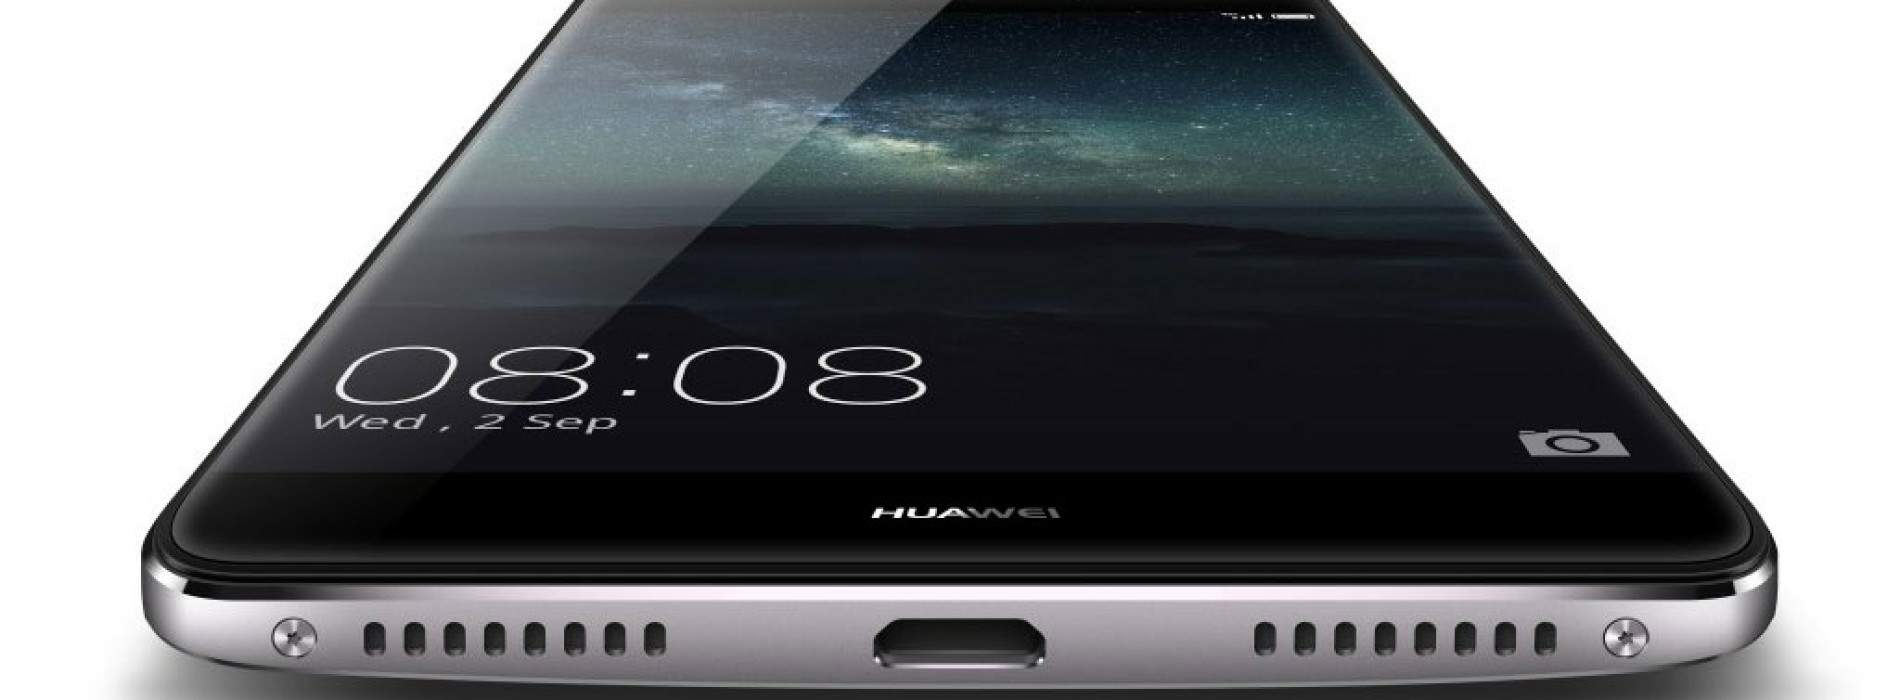 Huawei Mate S: El primero con Force Touch